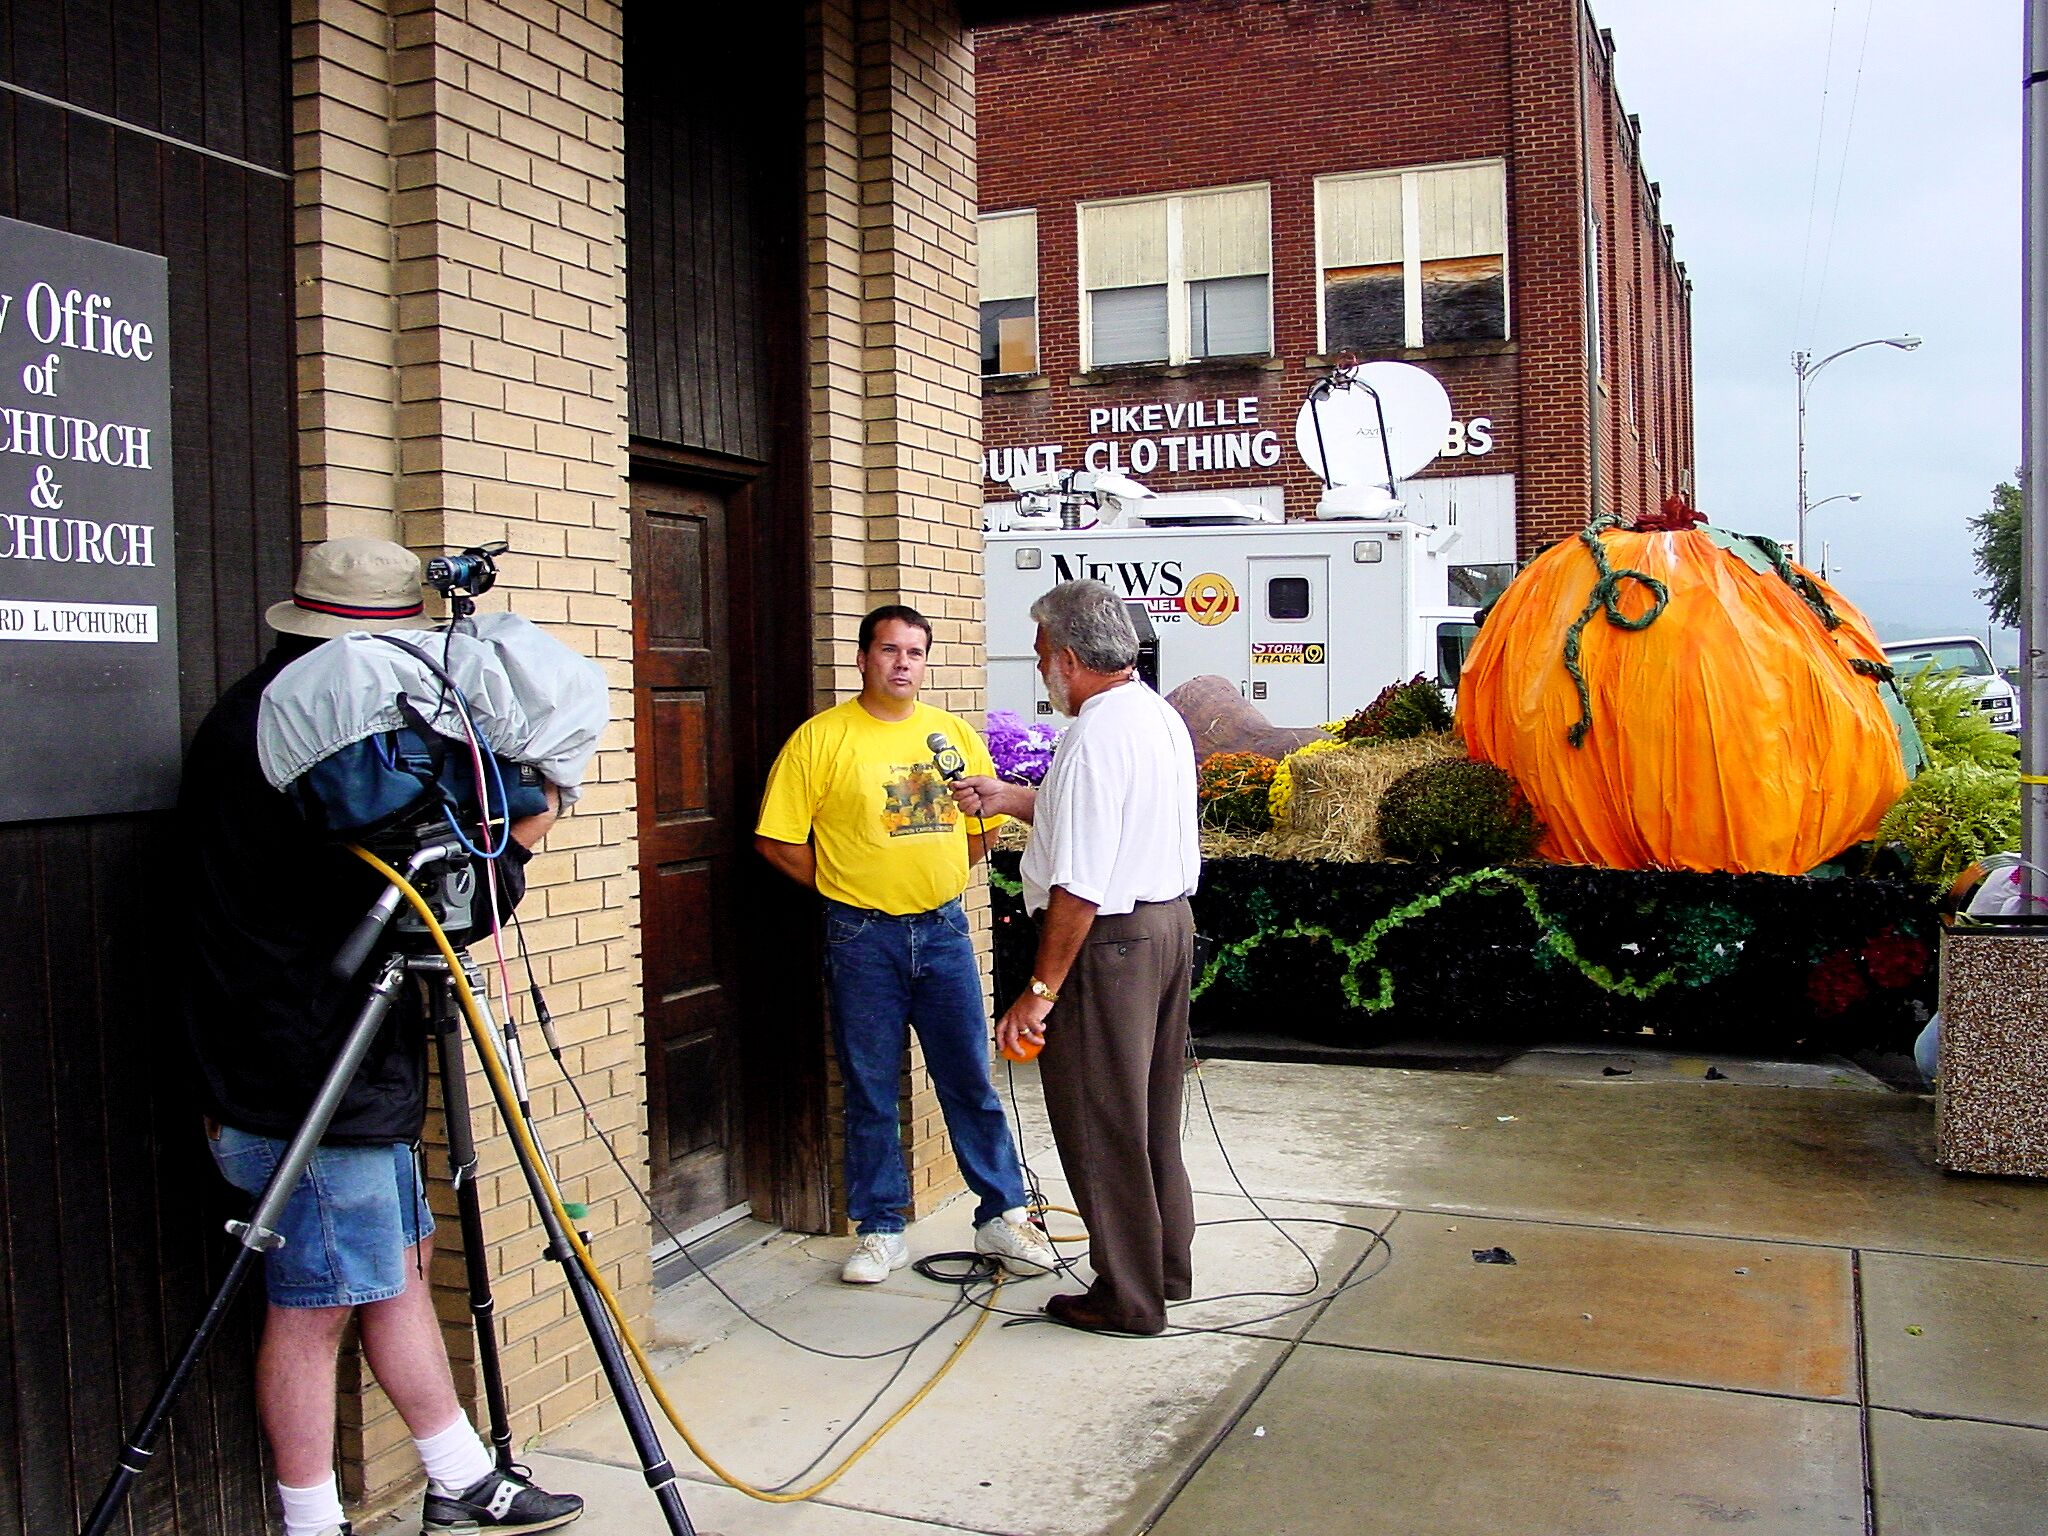 Live interview in Pikeville near Halloween-time. (Image via John Creel)